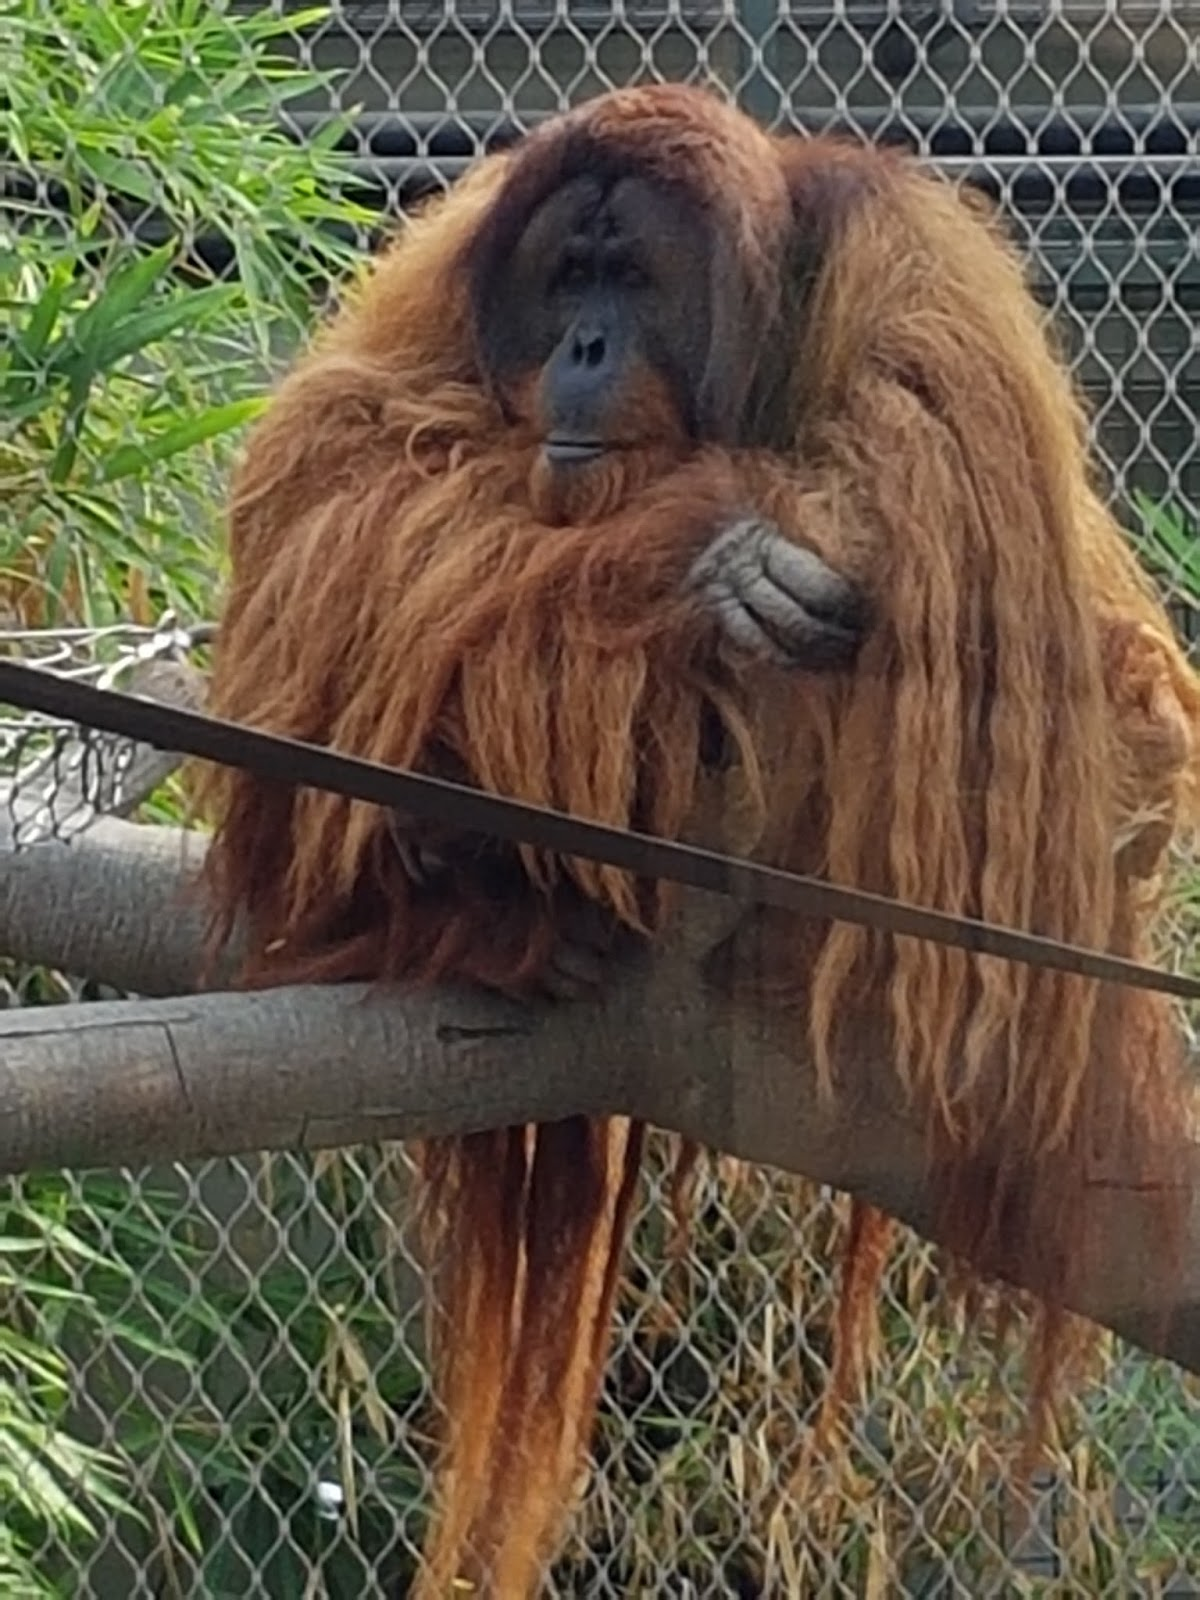 A picture of a very hairy orangutan!